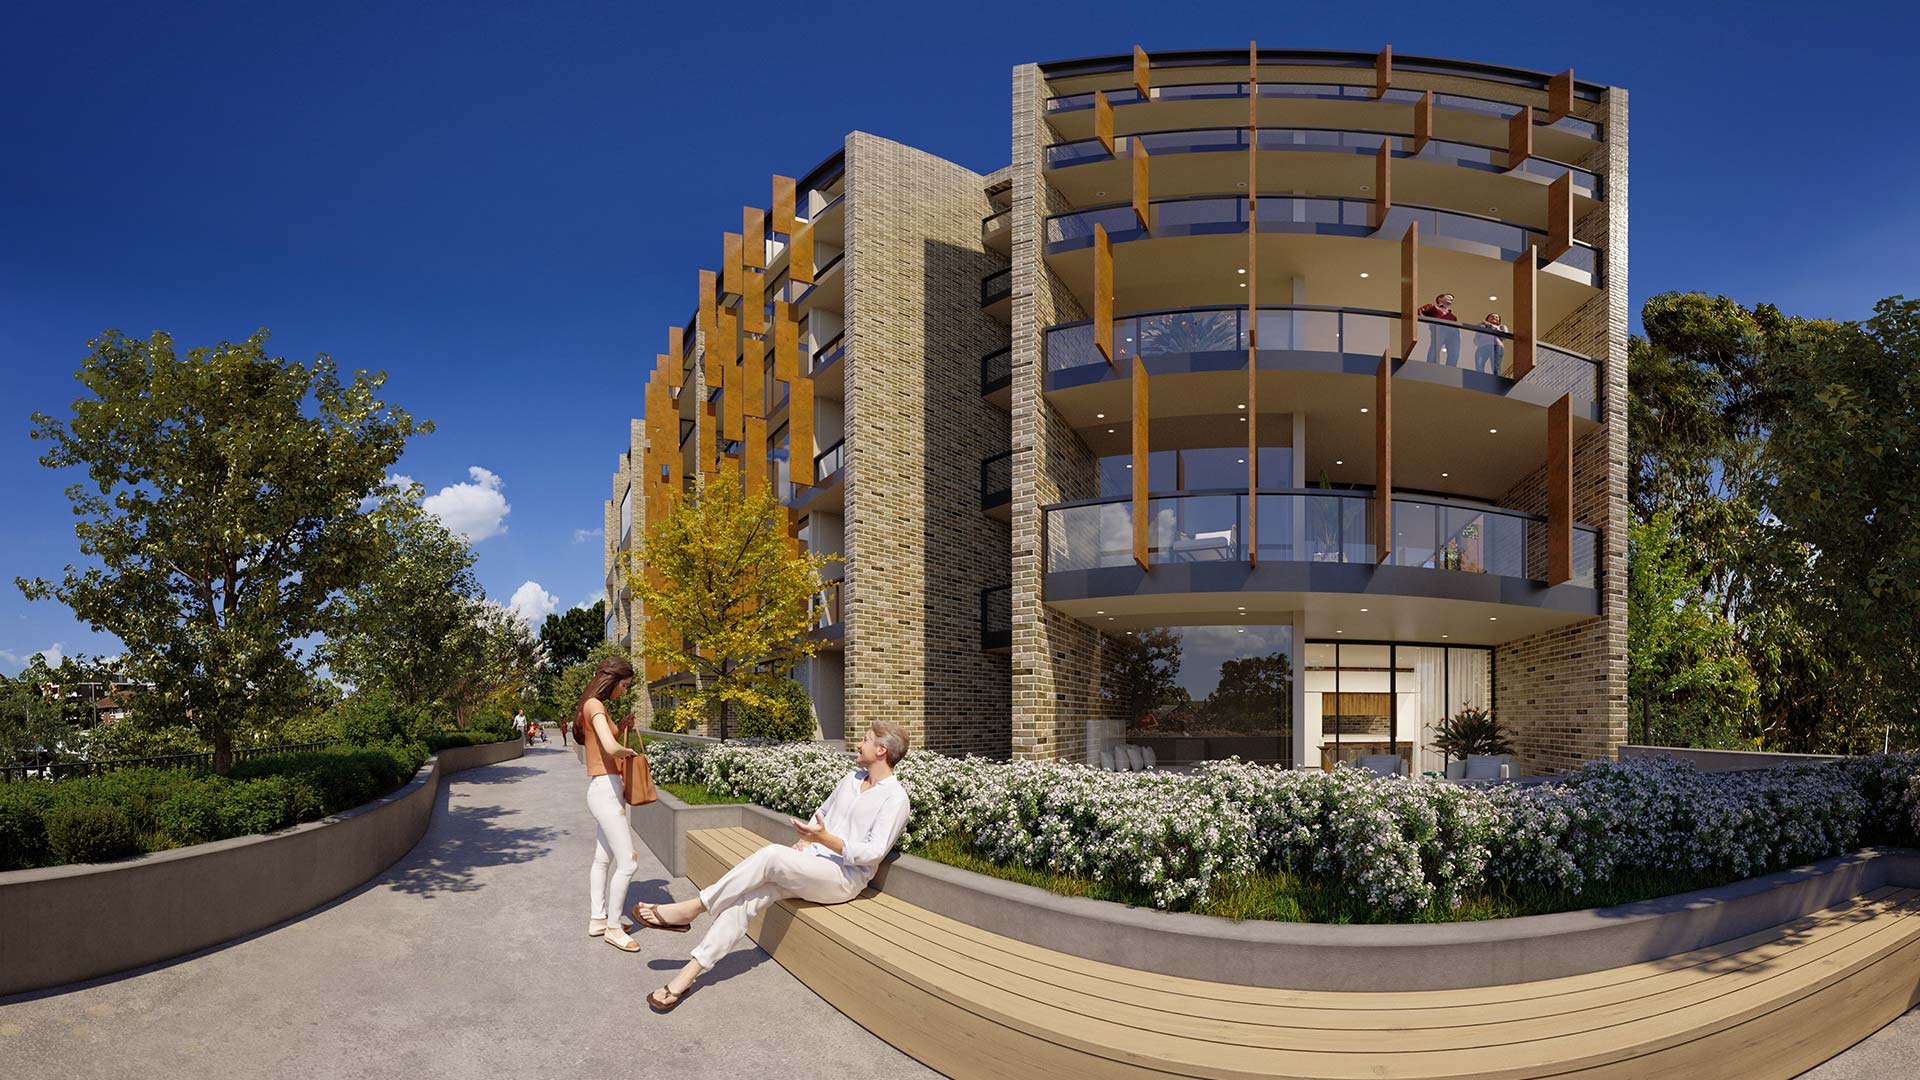 Real Estate VR Image of Chatswood Rose VR by Start Beyond 06